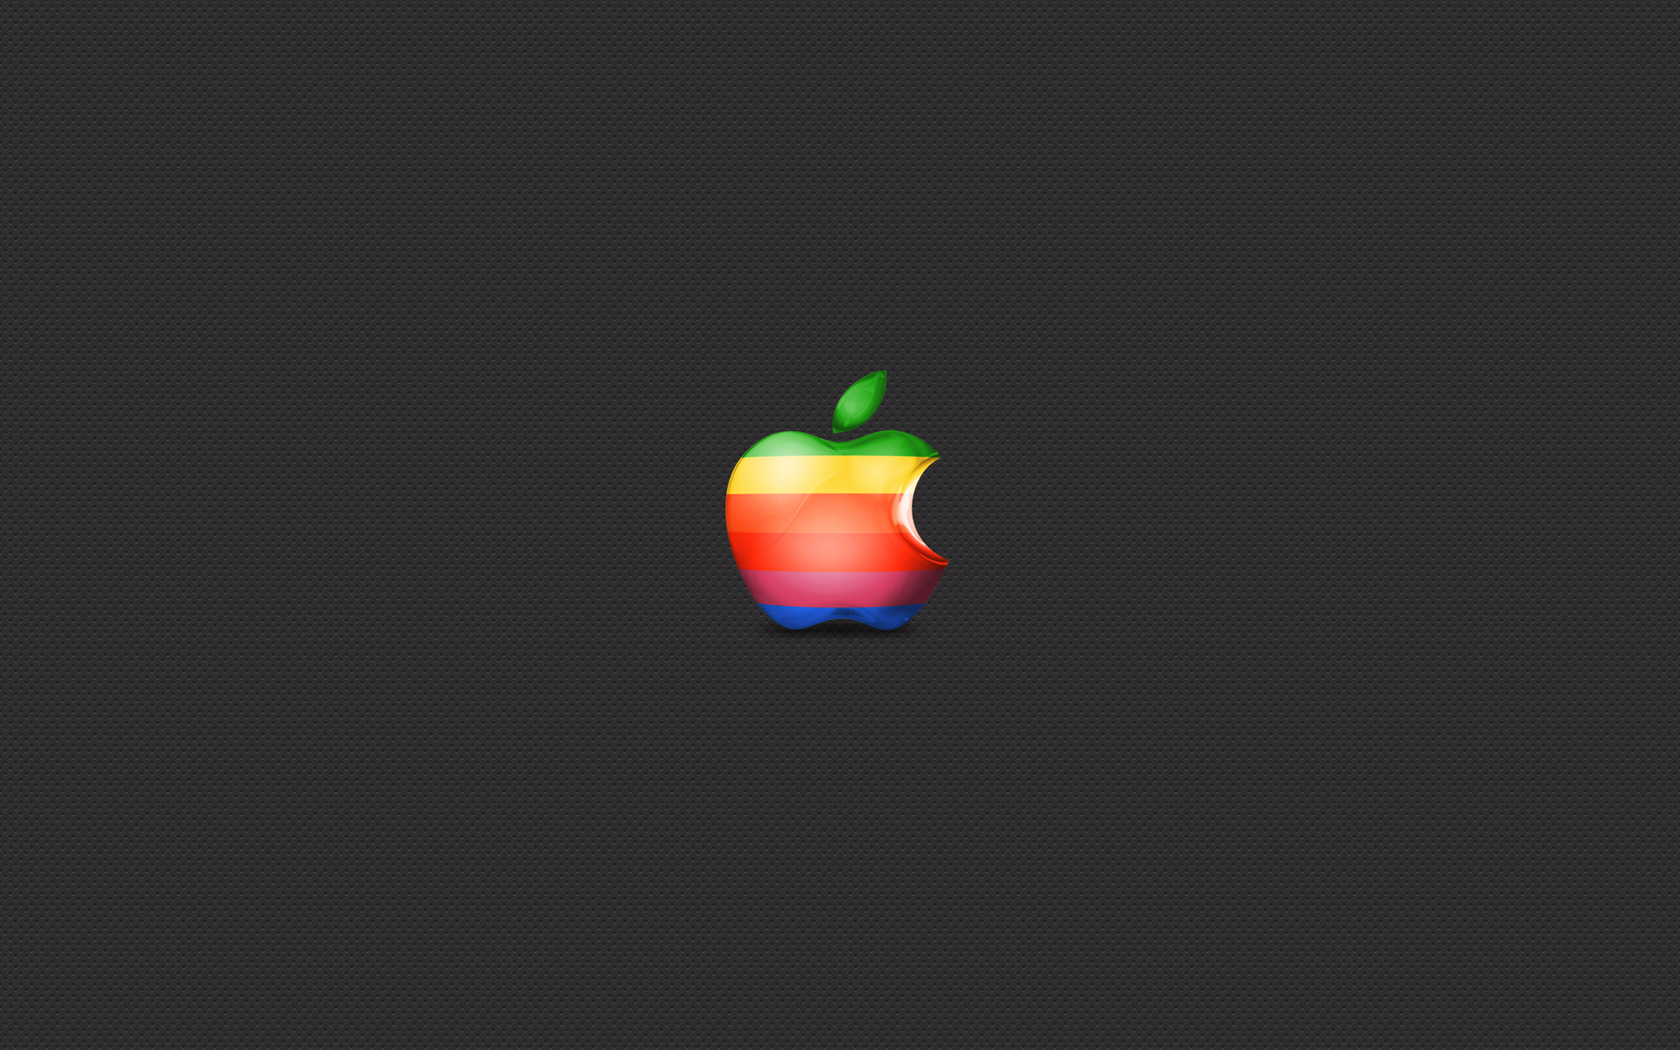 Pictures colourful apple logo iphone 4 wallpapers hd wallpaper desktop 766